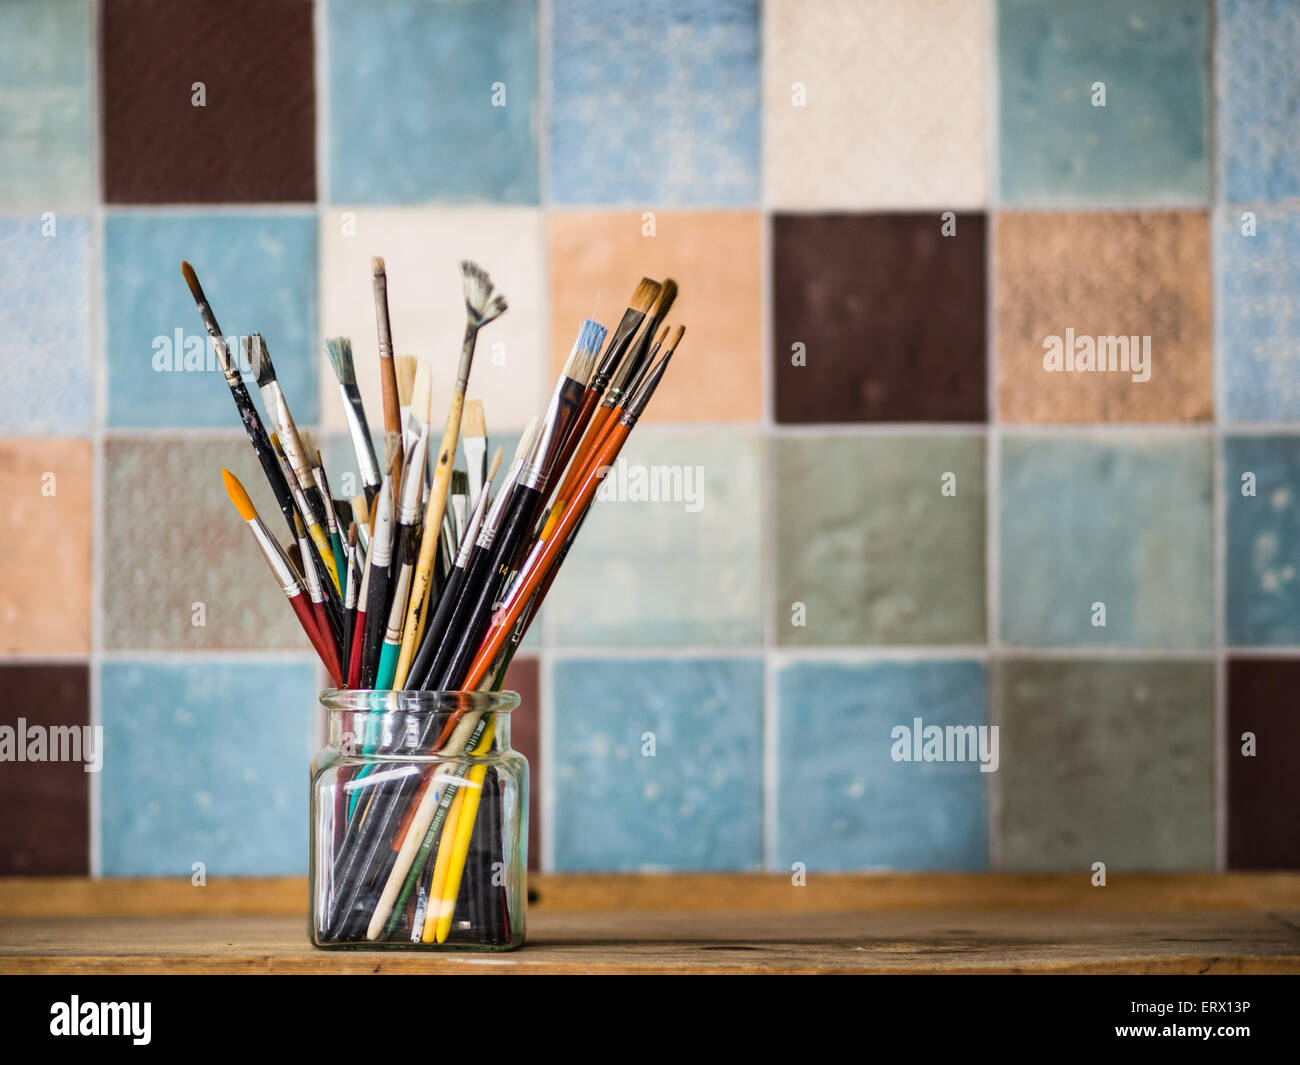 Bunch of paint brushes in a glass jar in front of a colorful tiled wall - Stock Image